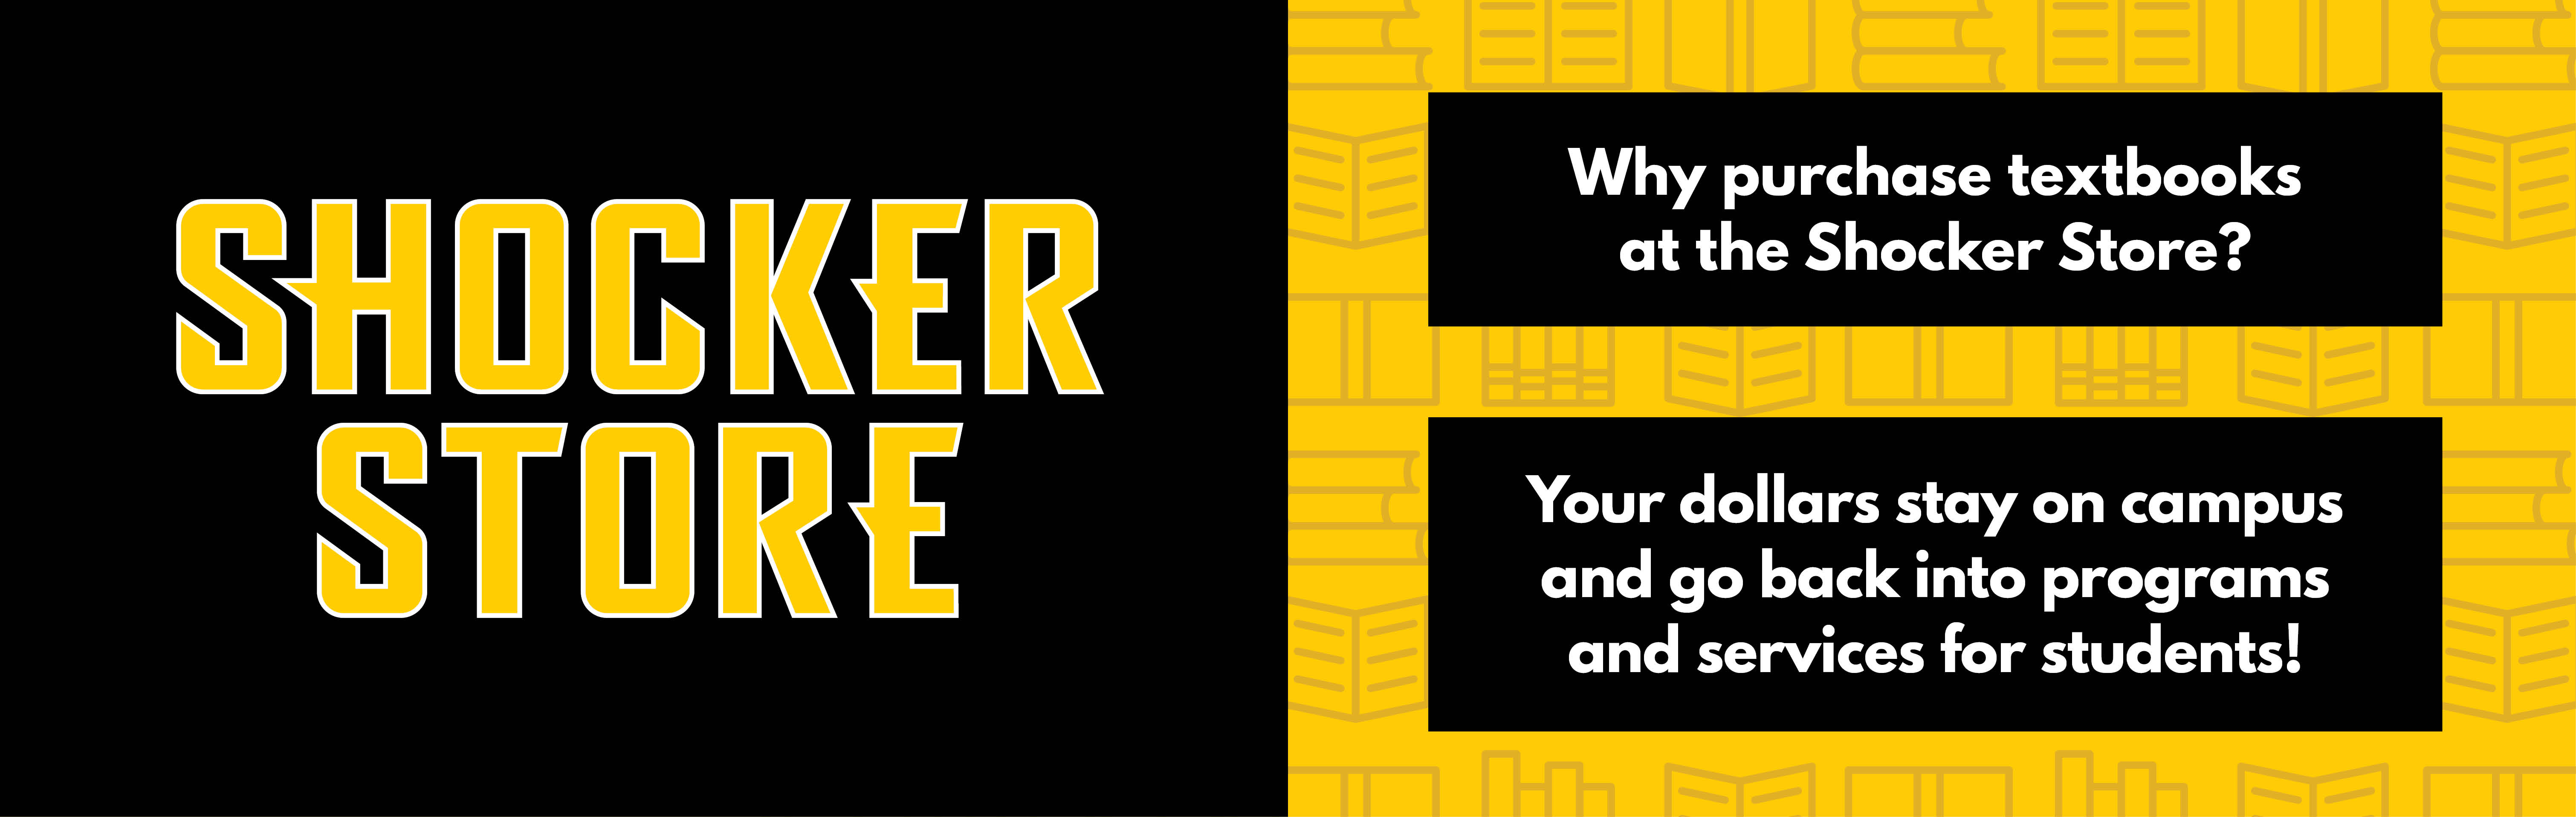 Why purchase textbooks at the Shocker Store? Your dollars stay on campus and go back into programs and services for students!